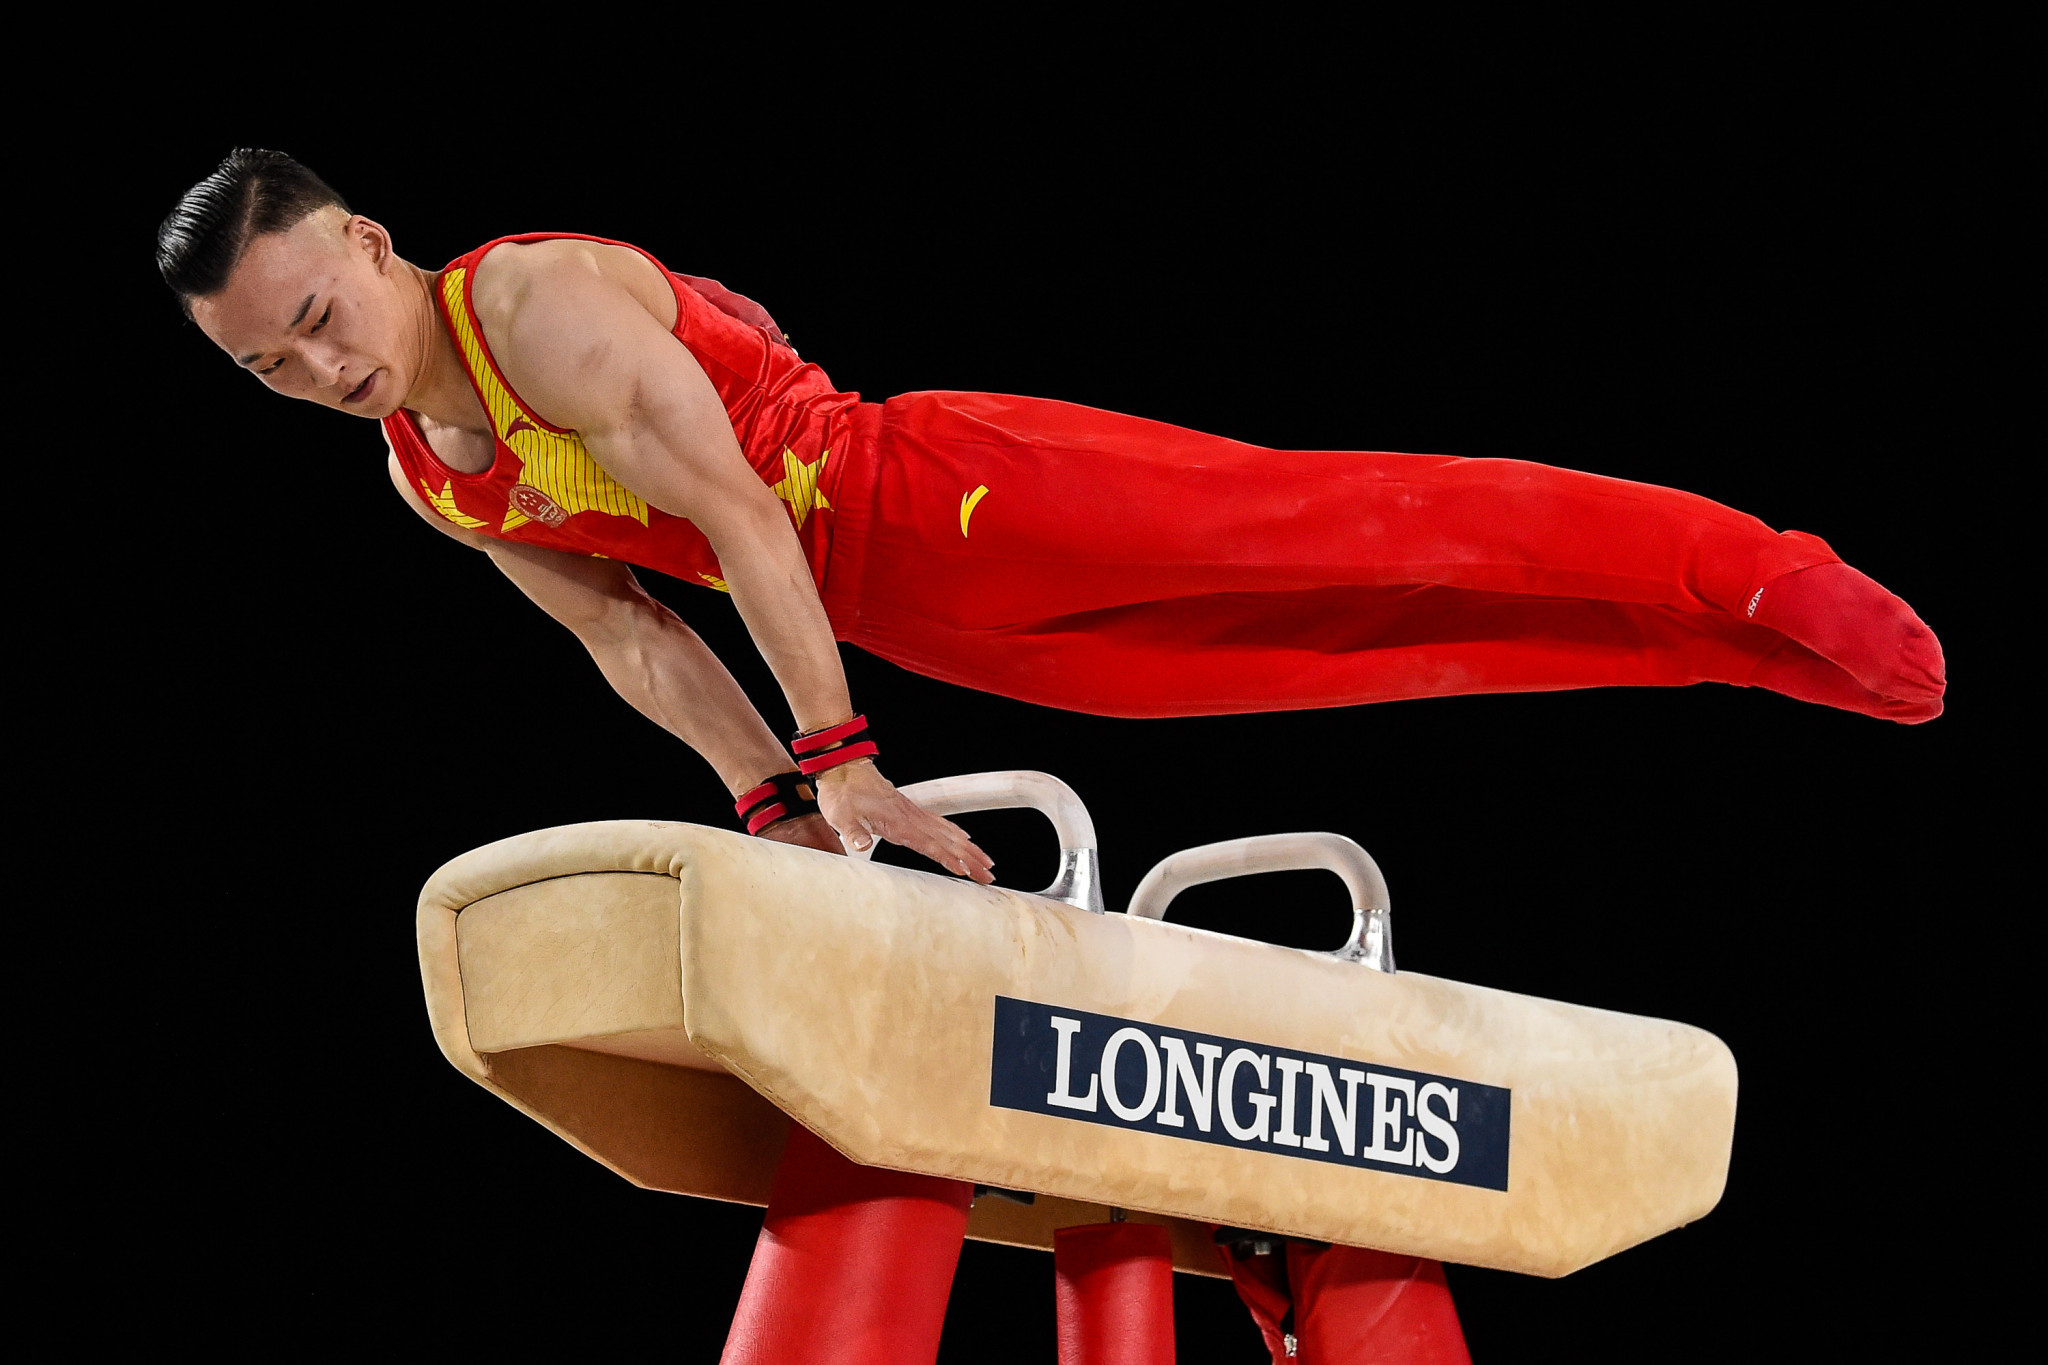 China's world all-around champion Xiao Ruoteng will also participate in Doha ©Getty Images